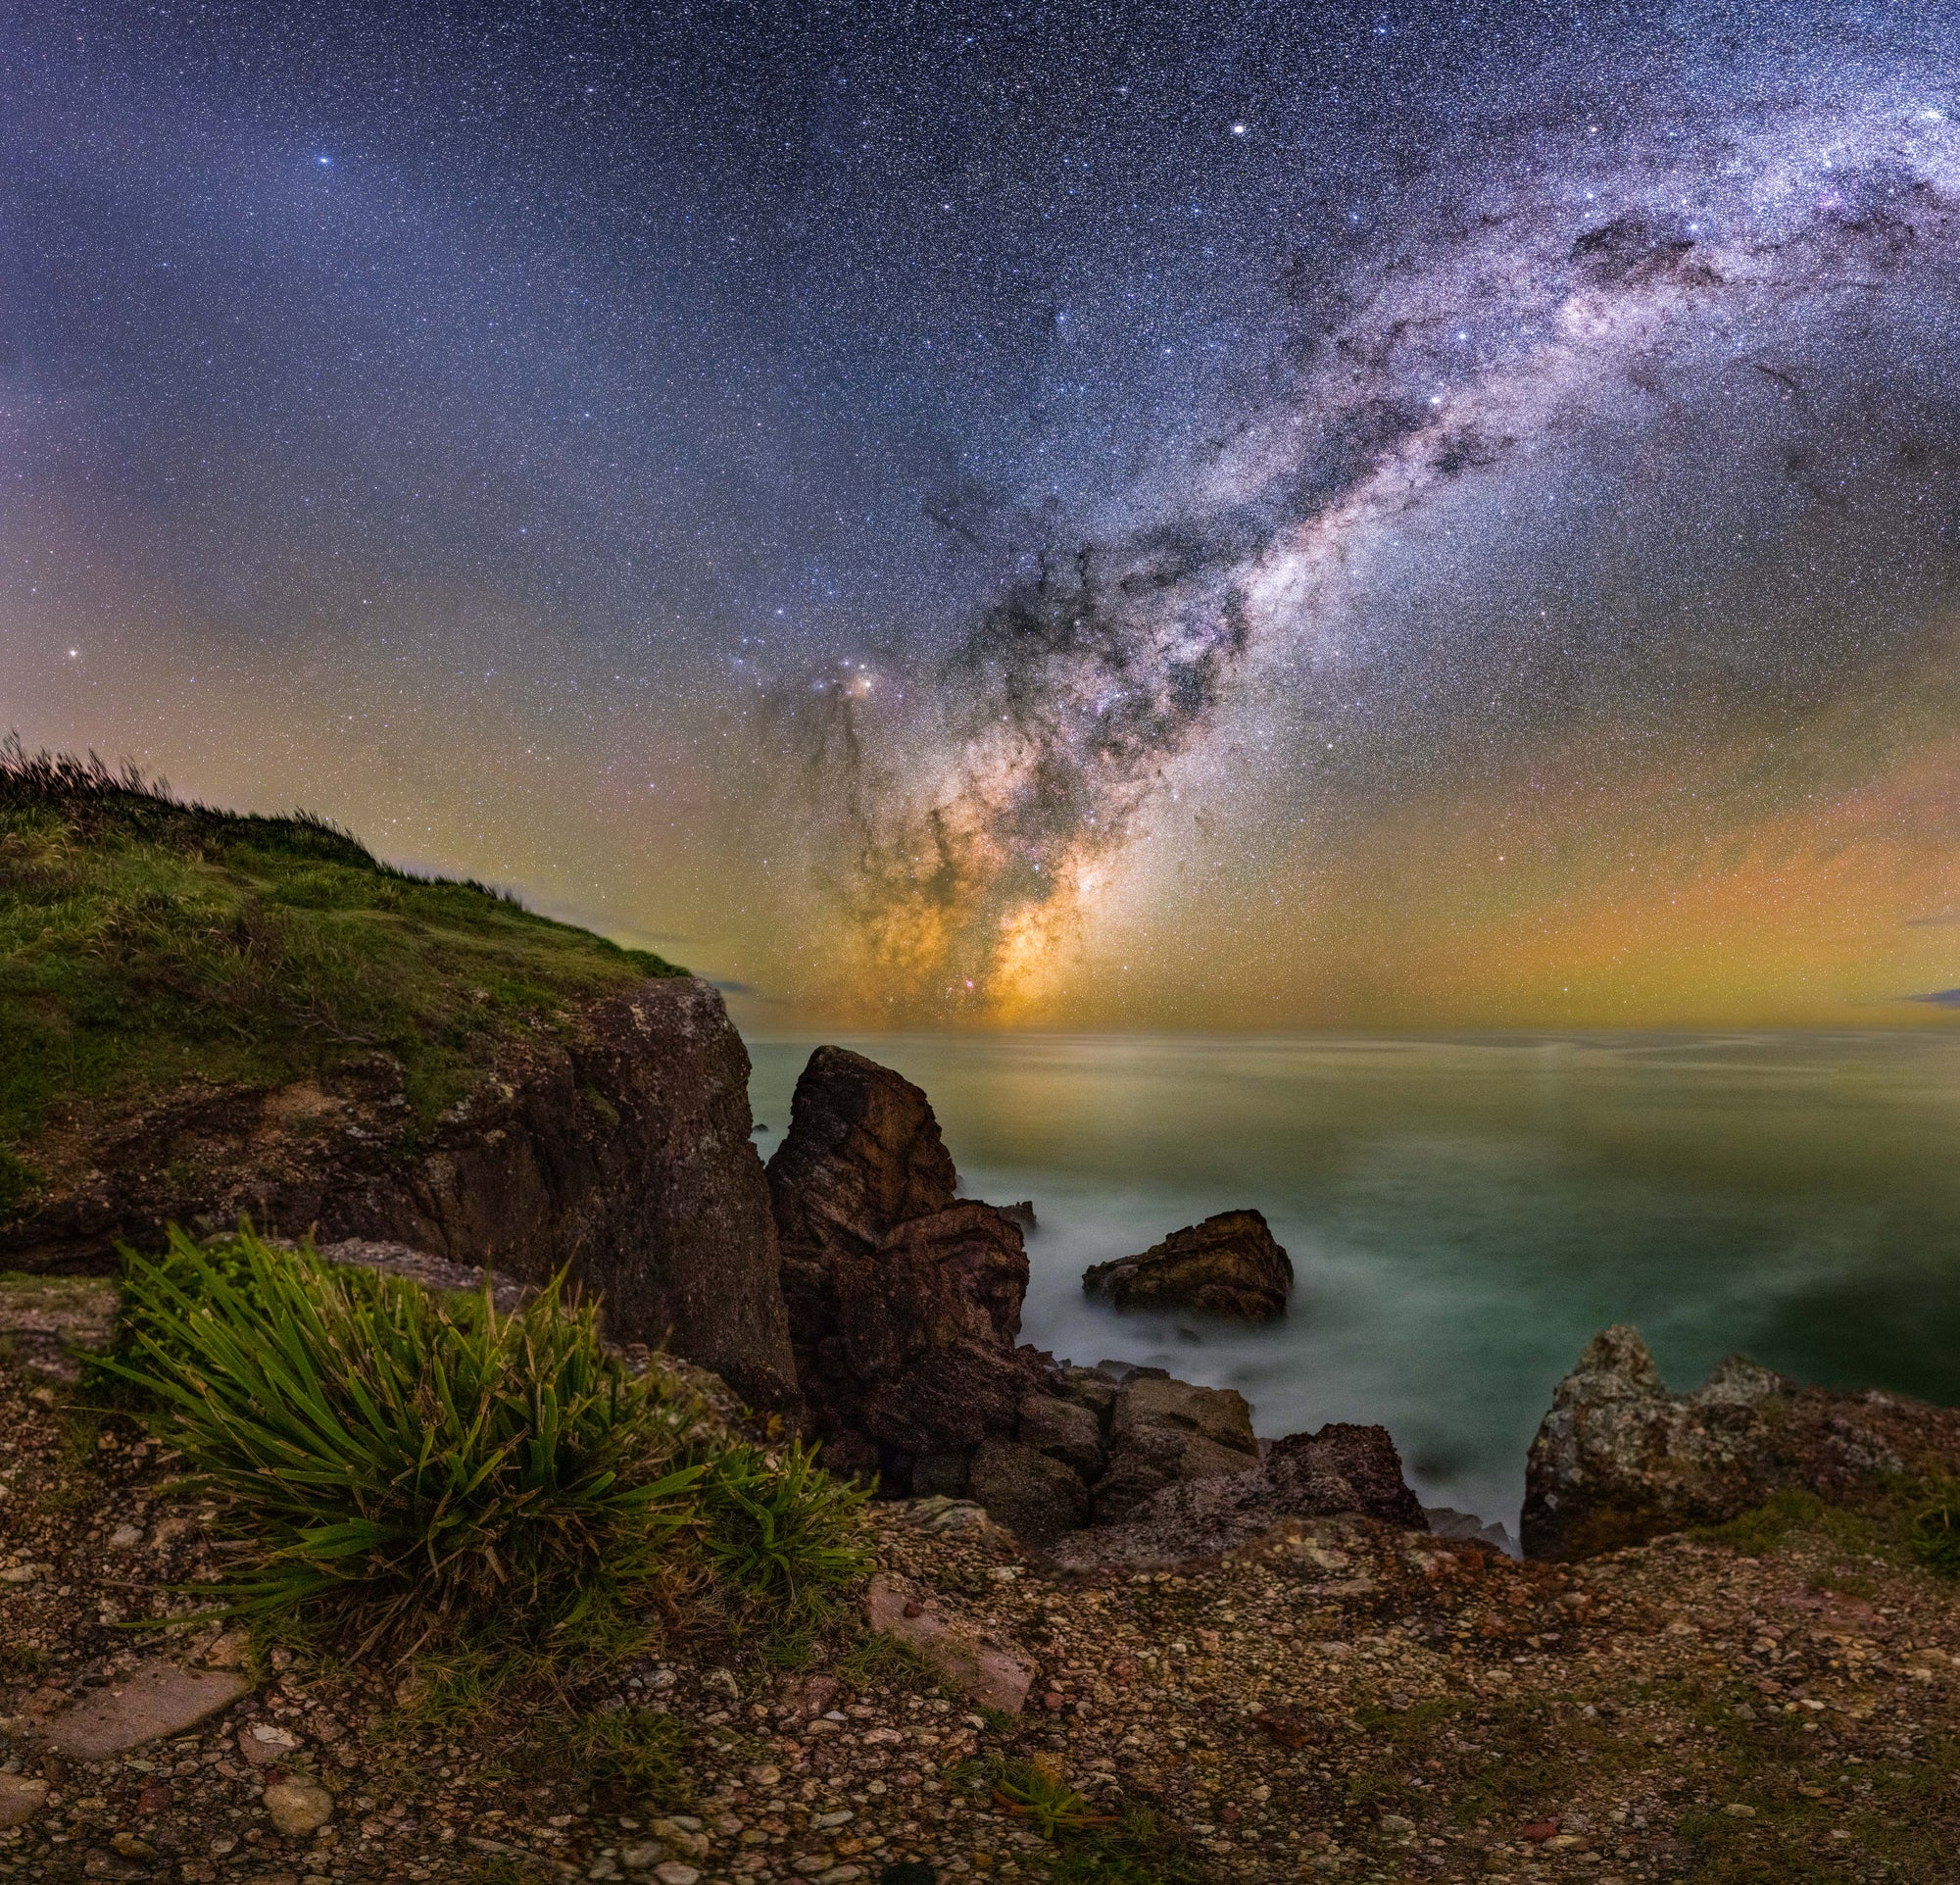 Milky Way at Grant's Head